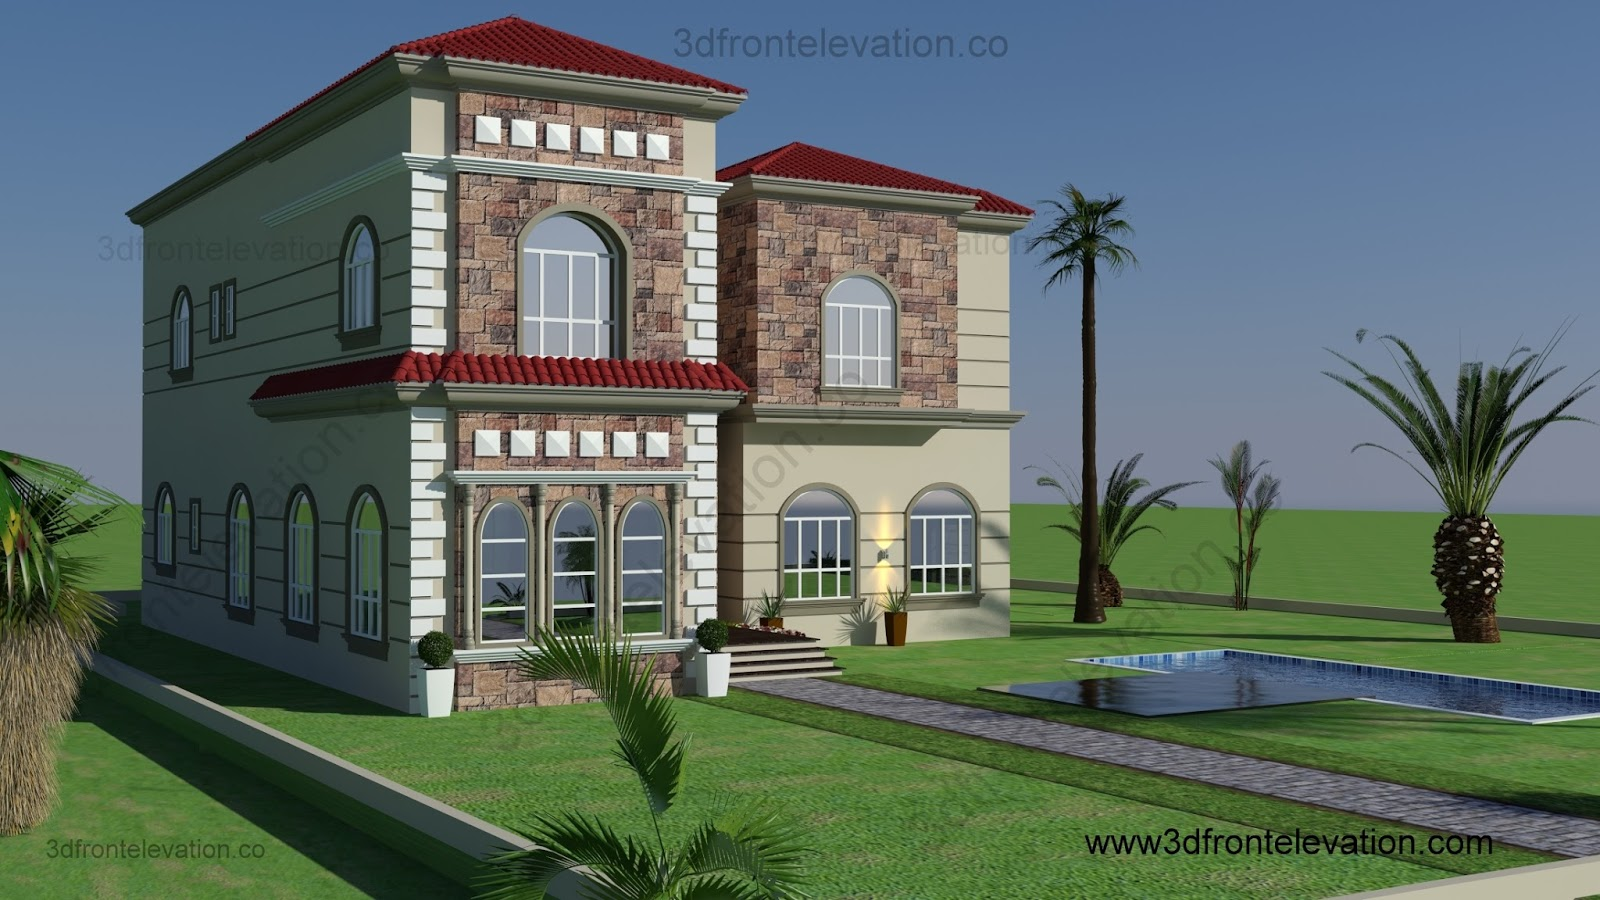 3d Front Elevation Of Houses In Dubai : D front elevation oman